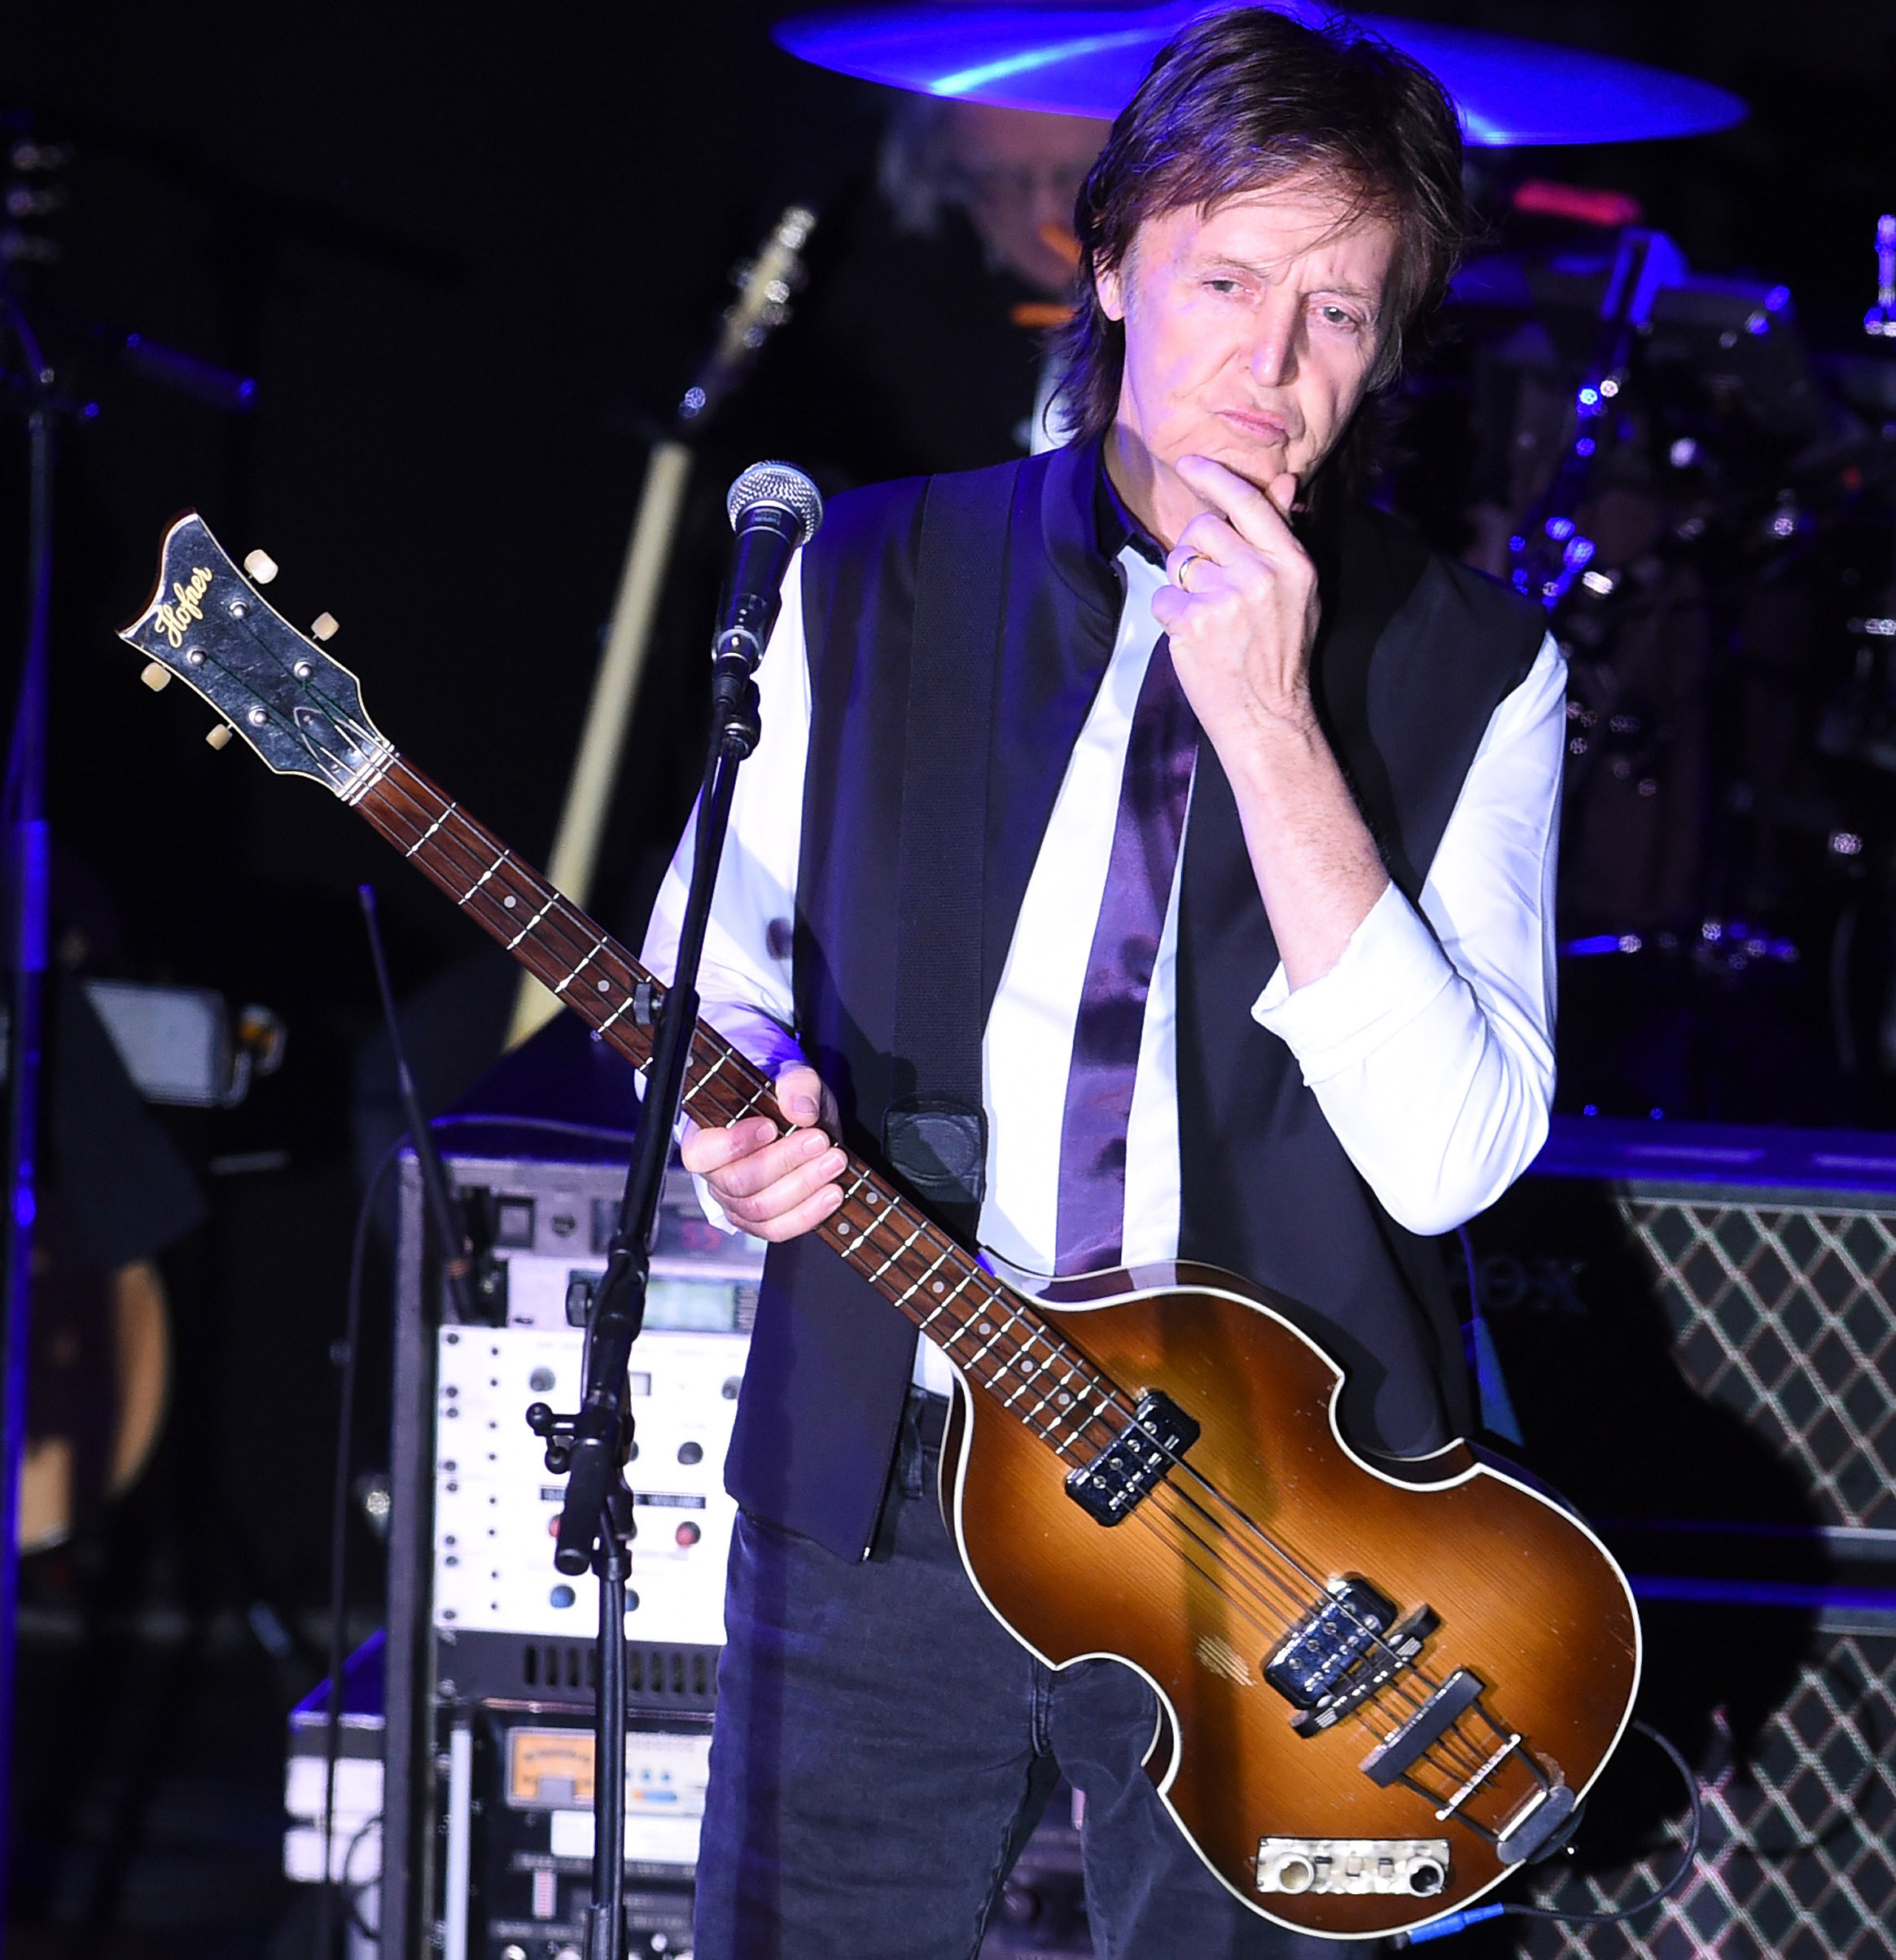 Paul McCartney In Concert - New York, NY